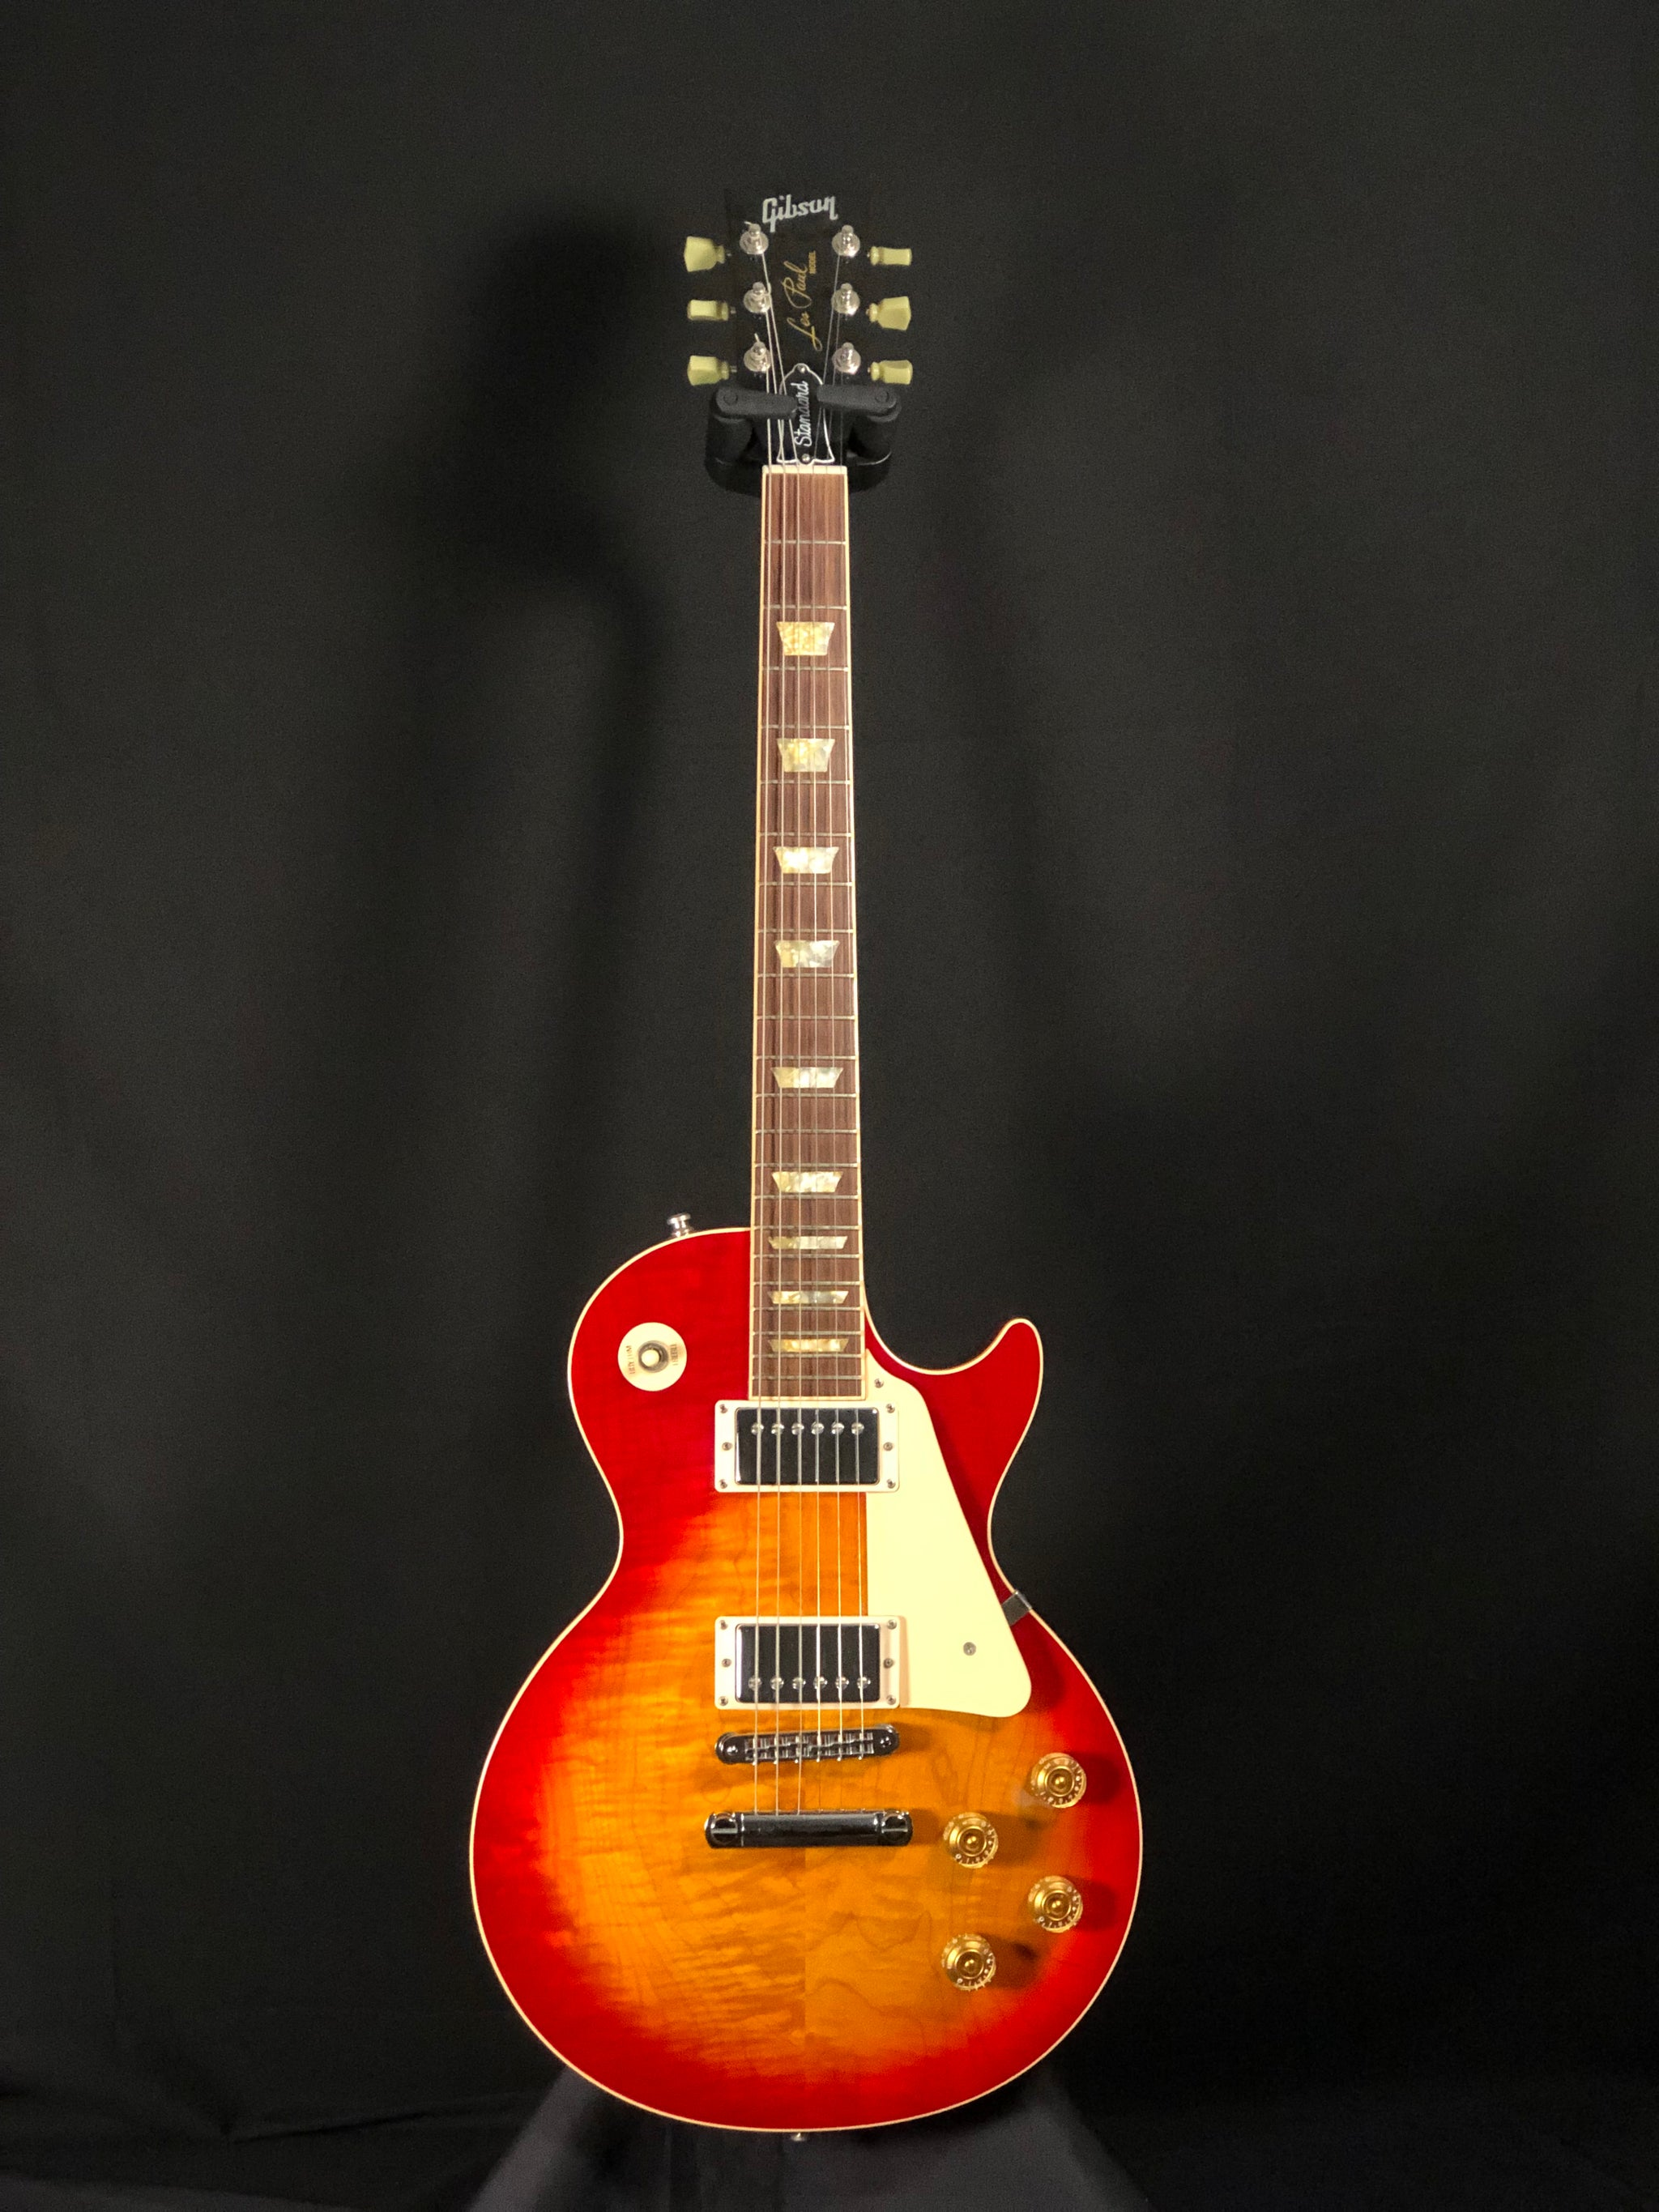 1993 Gibson Les Paul Standard - Cherry Sunburst